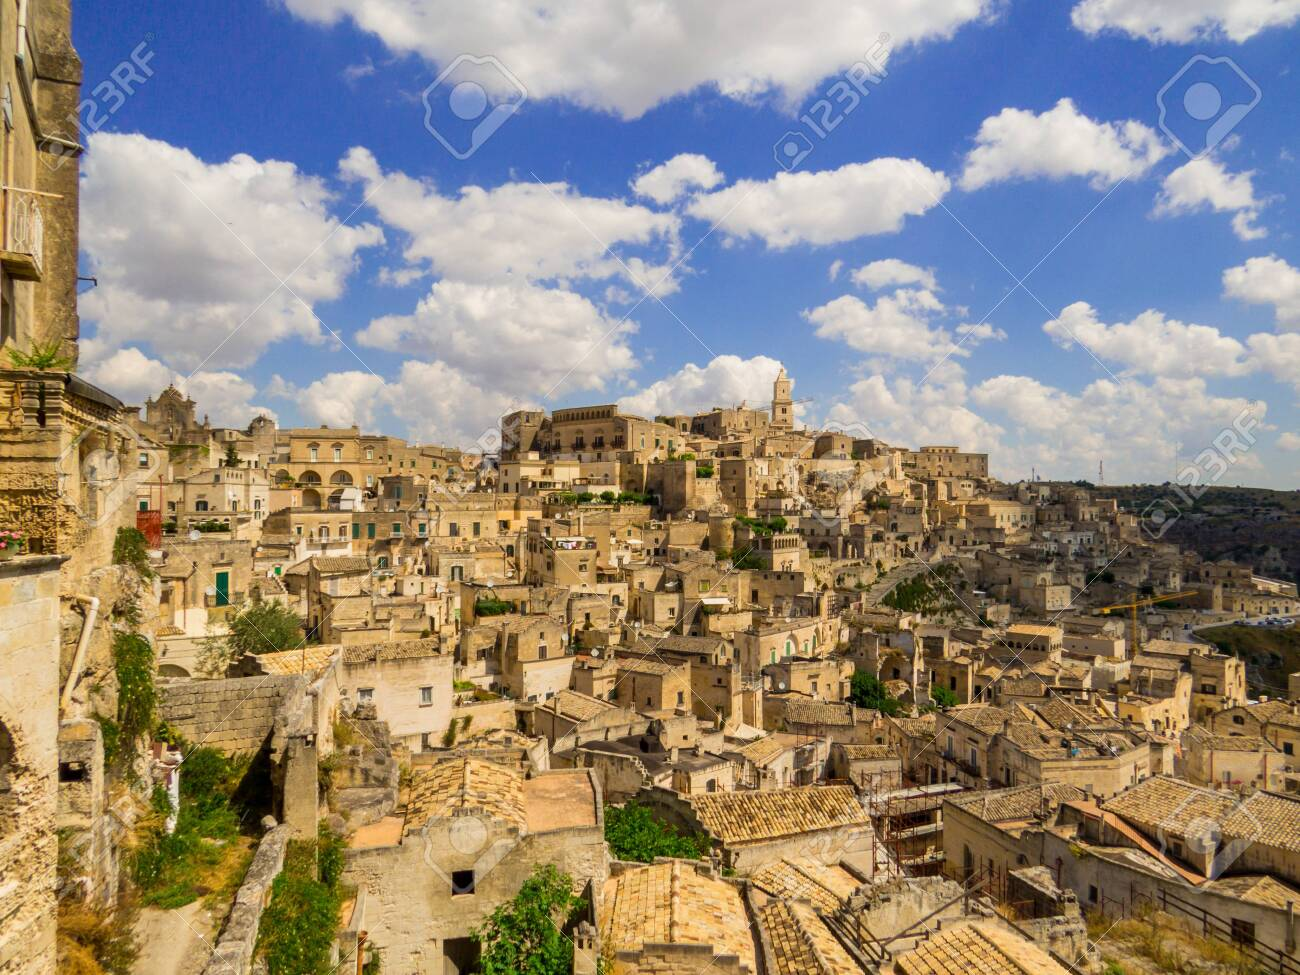 Summer view of the old town of Matera, Italy - 151425808